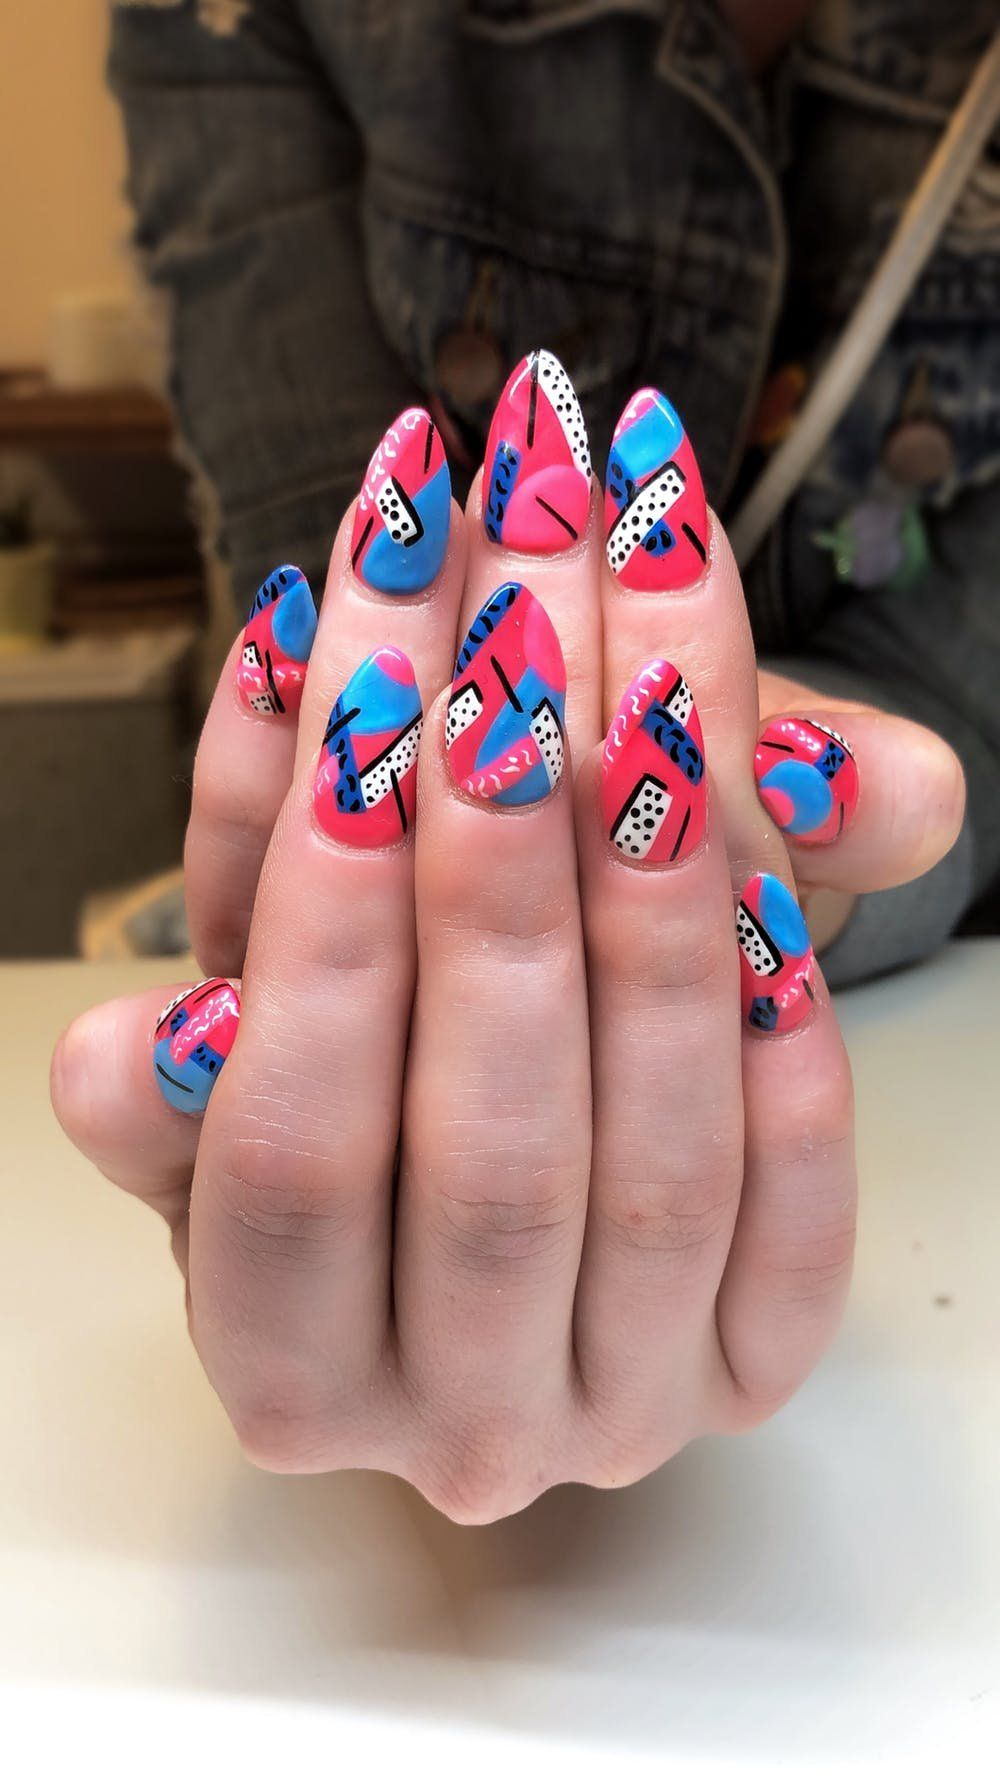 12 80s Nail Art Ideas To Round Out Your End Of Summer Style 80s Nails Fun Summer Nails Nail Art Summer